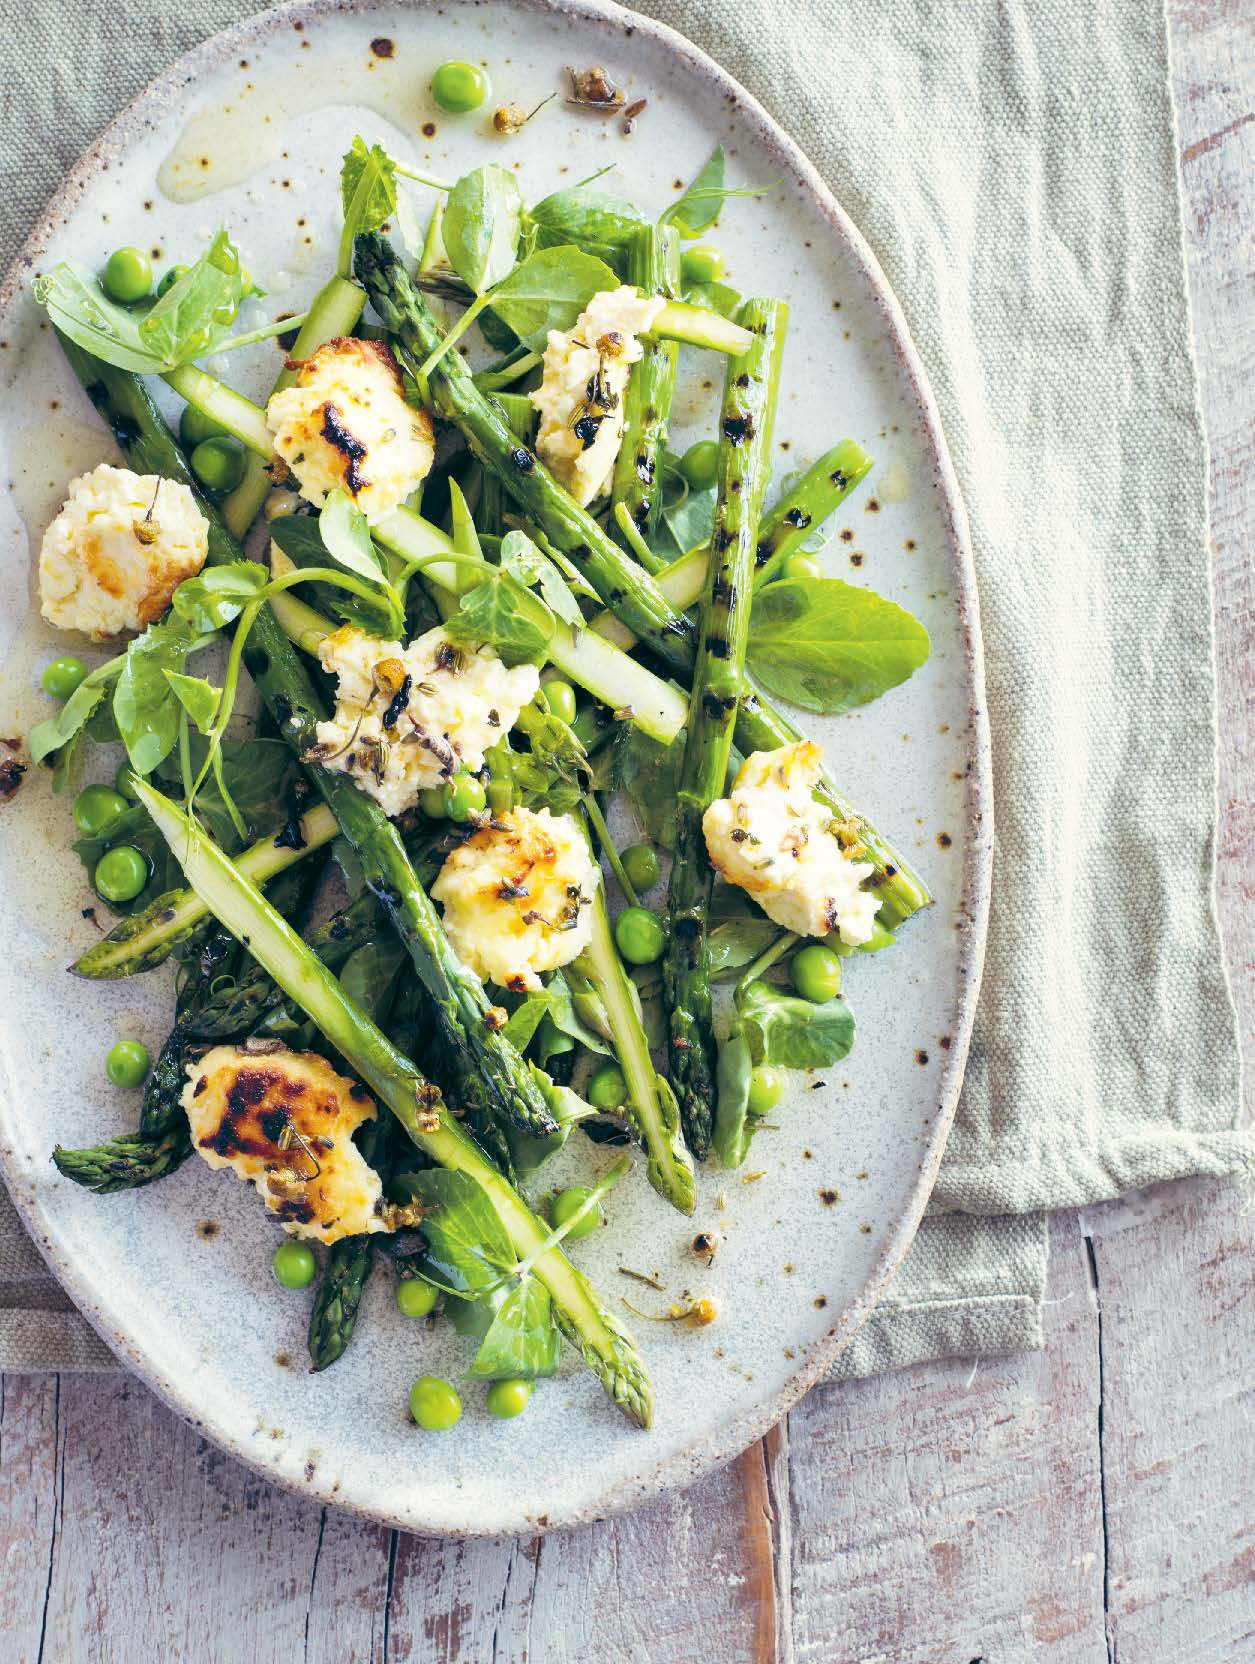 Asparagus, peas and chamomile with ricotta